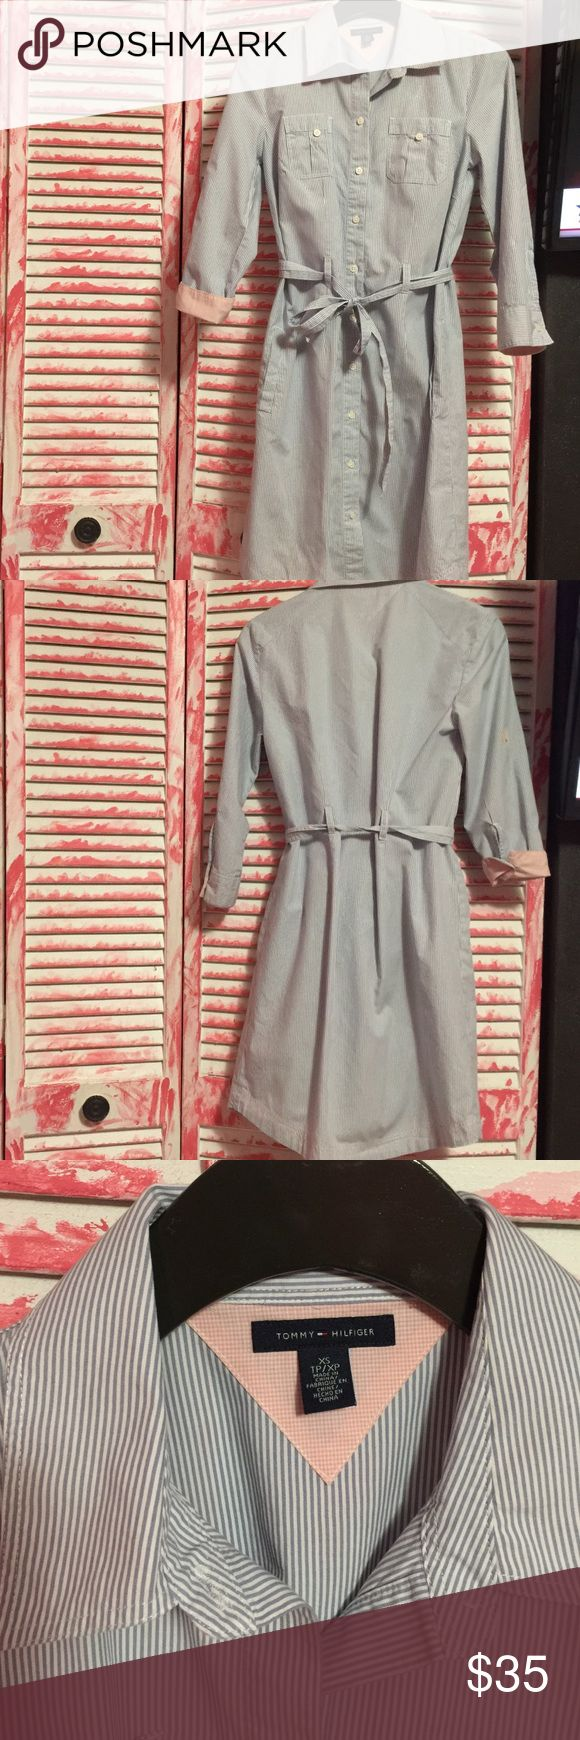 Tommy Hilfiger dress Used only once. Looks brand new Tommy Hilfiger dress. Very cute little below the knee. Tommy Hilfiger Dresses Maxi